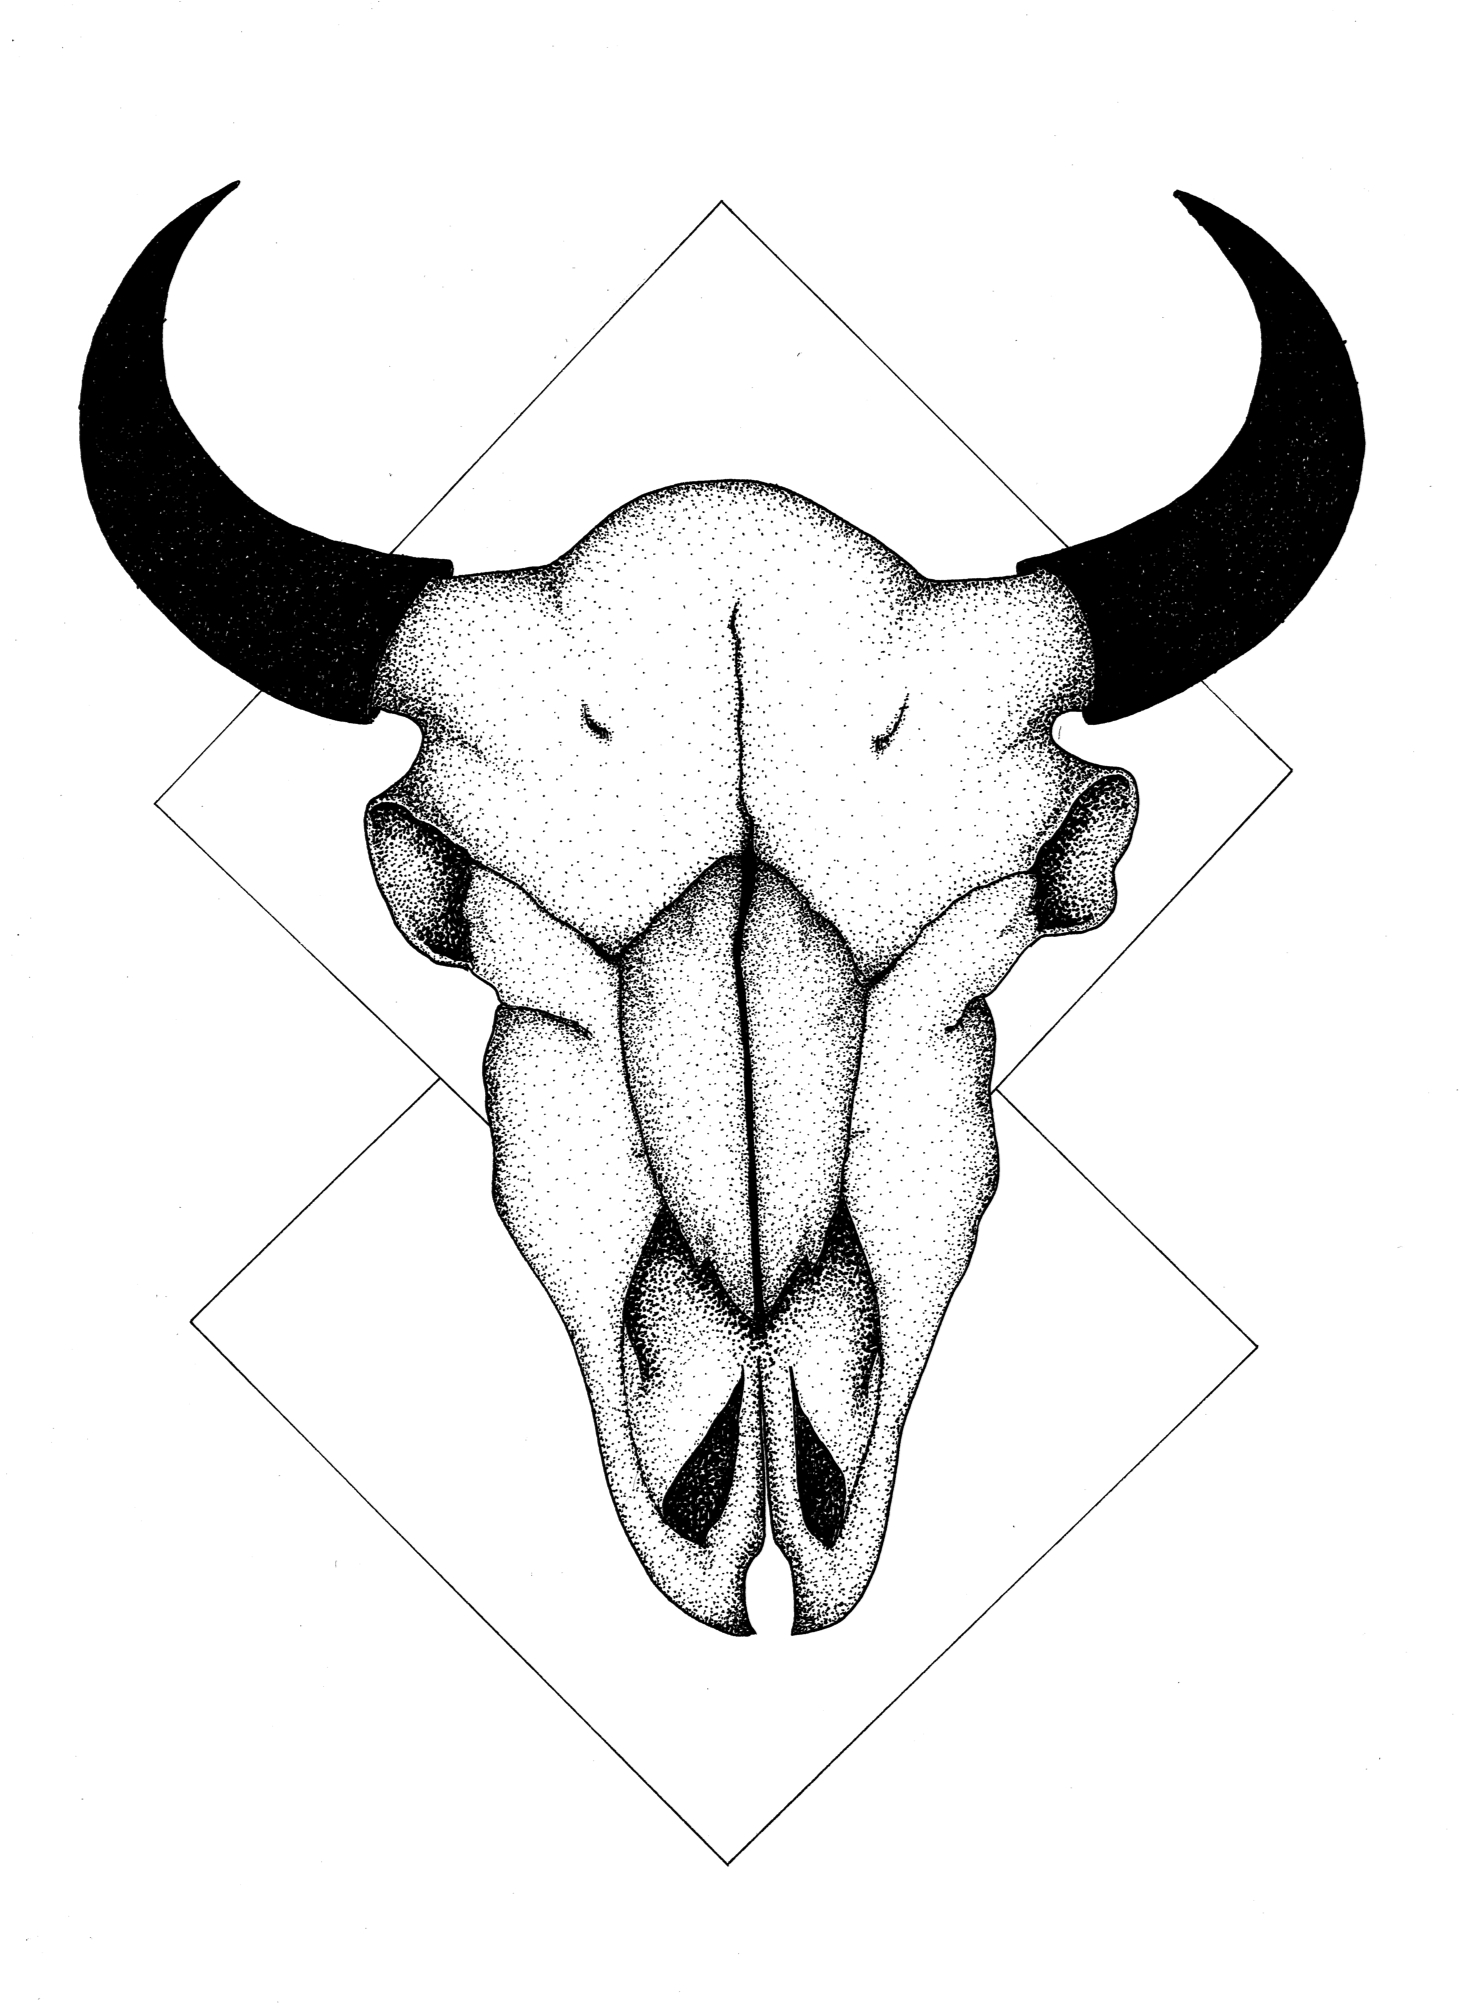 1463x2007 One Piece In A Series Of Animal Skulls, Experimenting